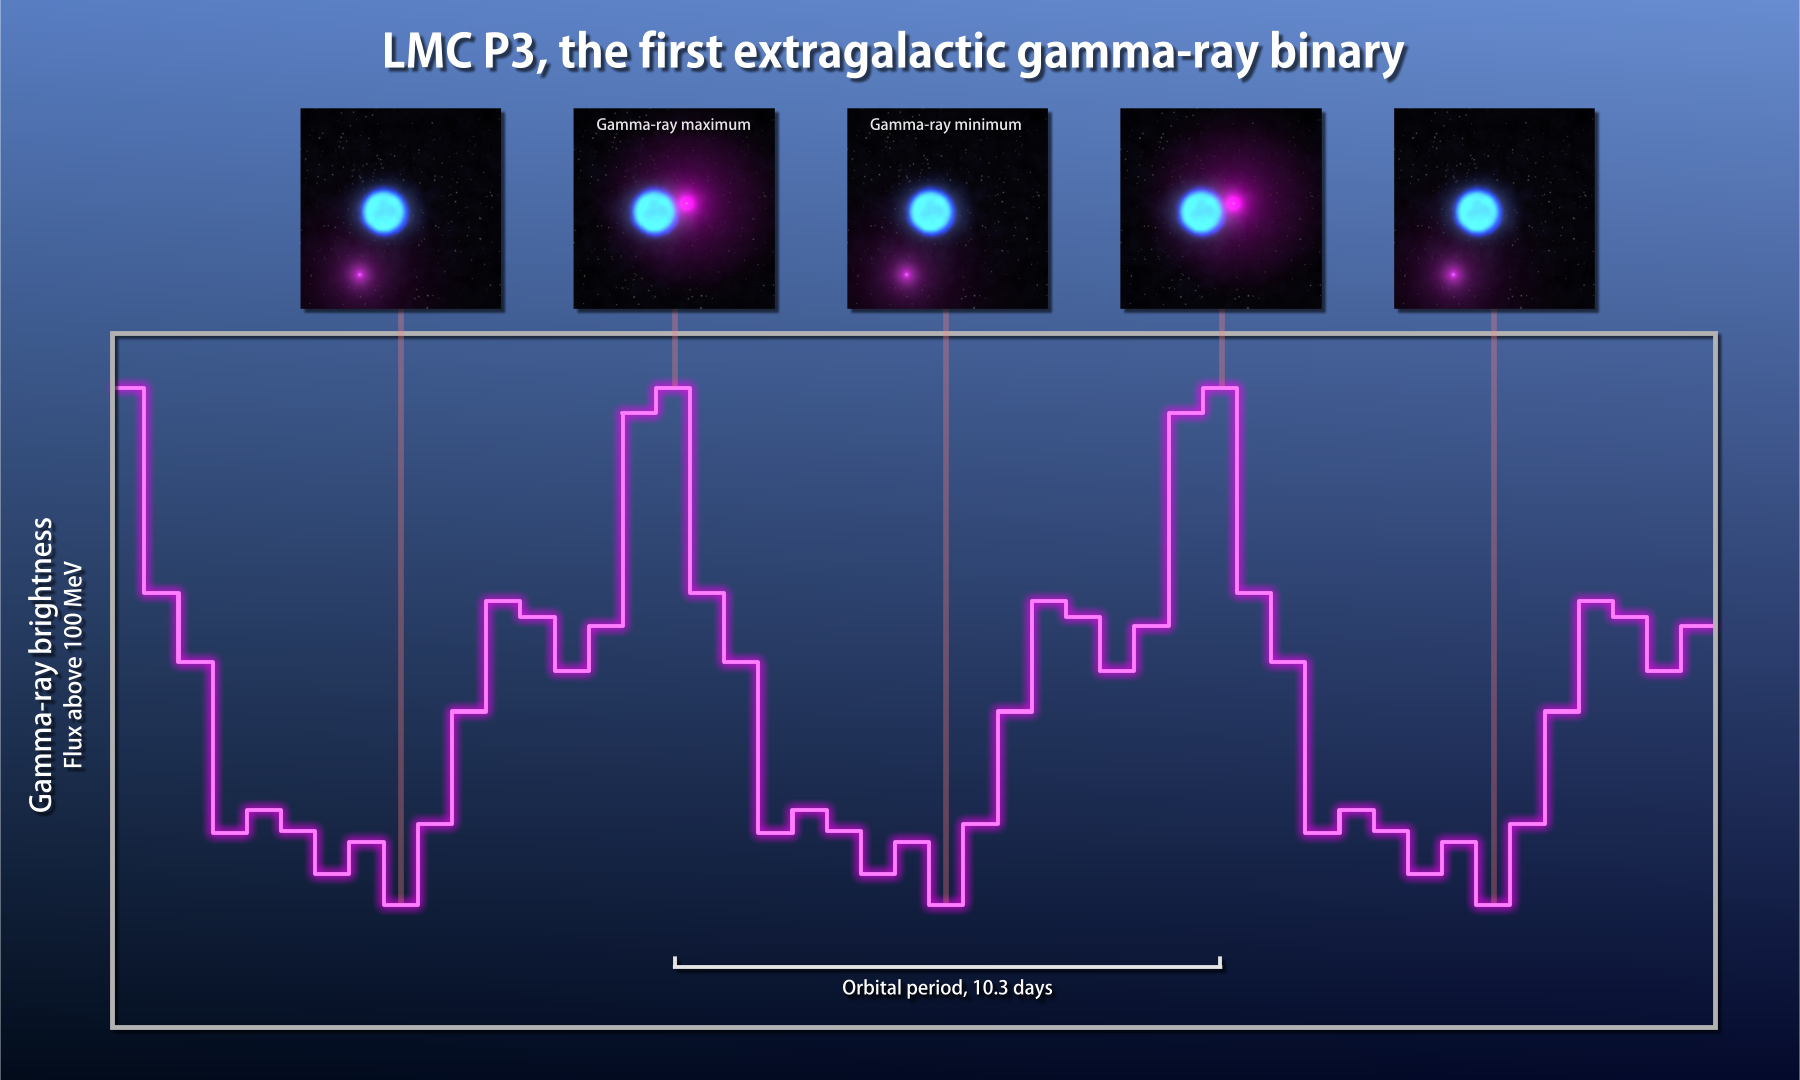 Observations from Fermi's Large Area Telescope (magenta line) show that gamma rays from LMC P3 rise and fall over the course of 10.3 days. The companion is thought to be a neutron star. Illustrations across the top show how the changing position of the neutron star relates to the gamma-ray cycle. Illustration credits: NASA's Goddard Space Flight Center.